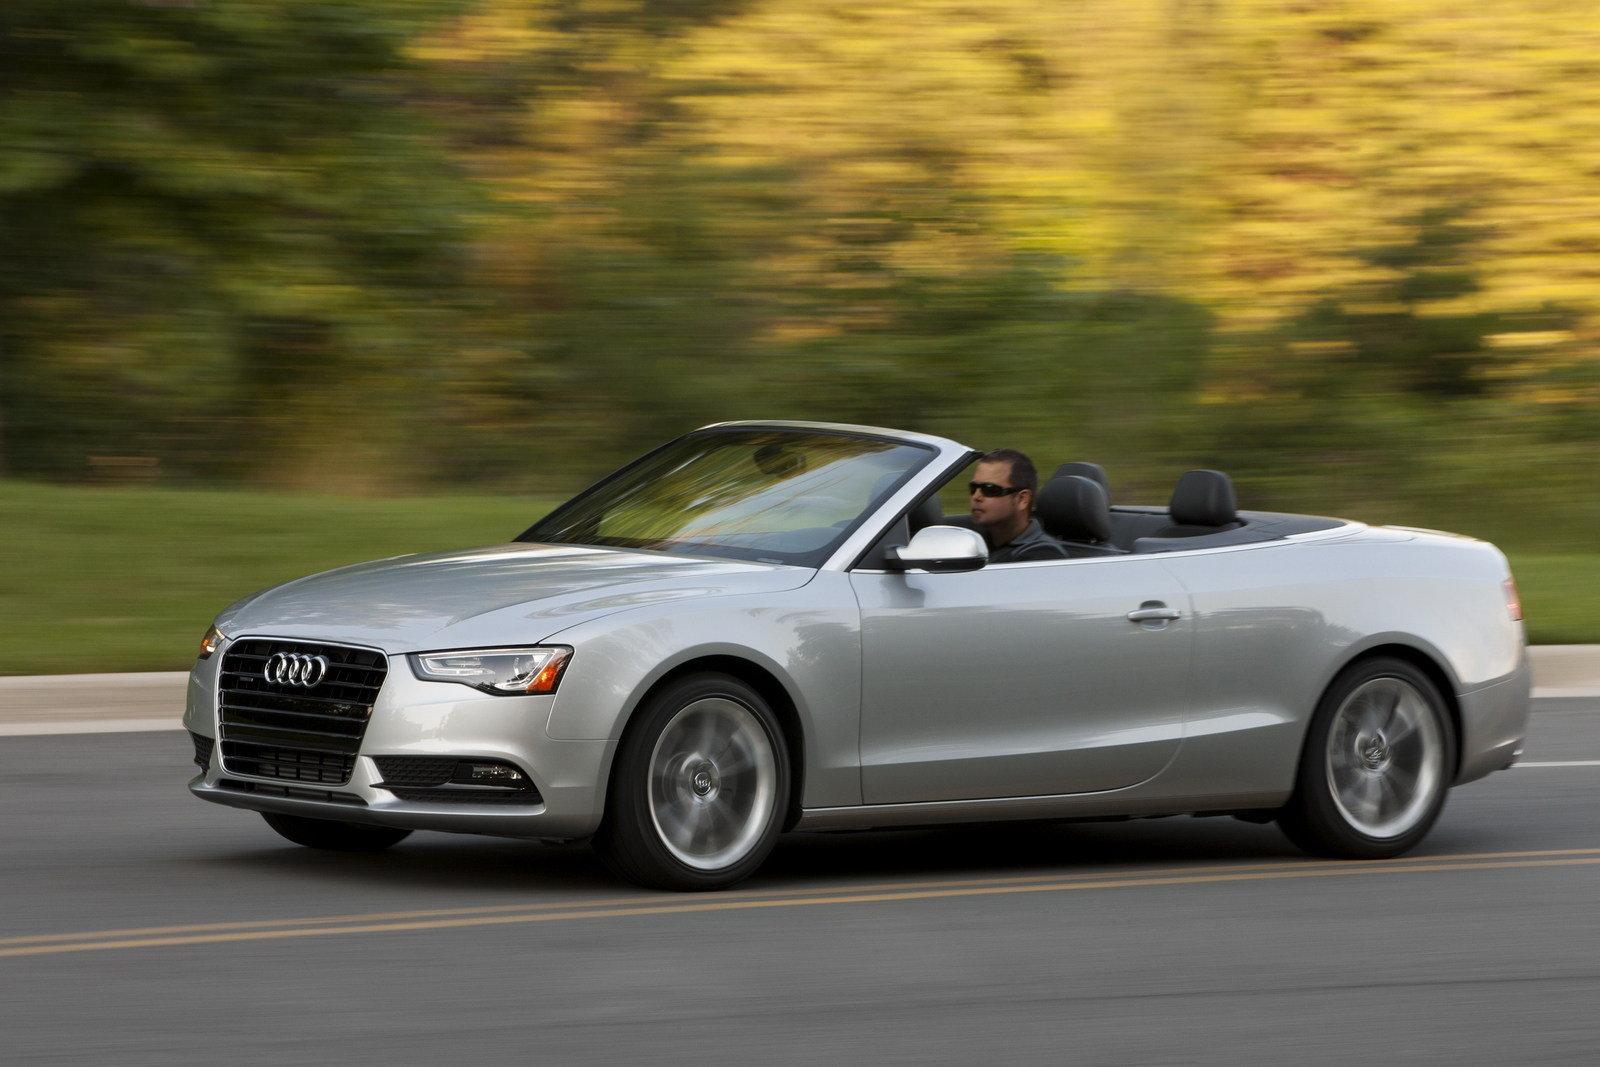 2014 audi a5 convertible picture 511602 car review top speed. Black Bedroom Furniture Sets. Home Design Ideas